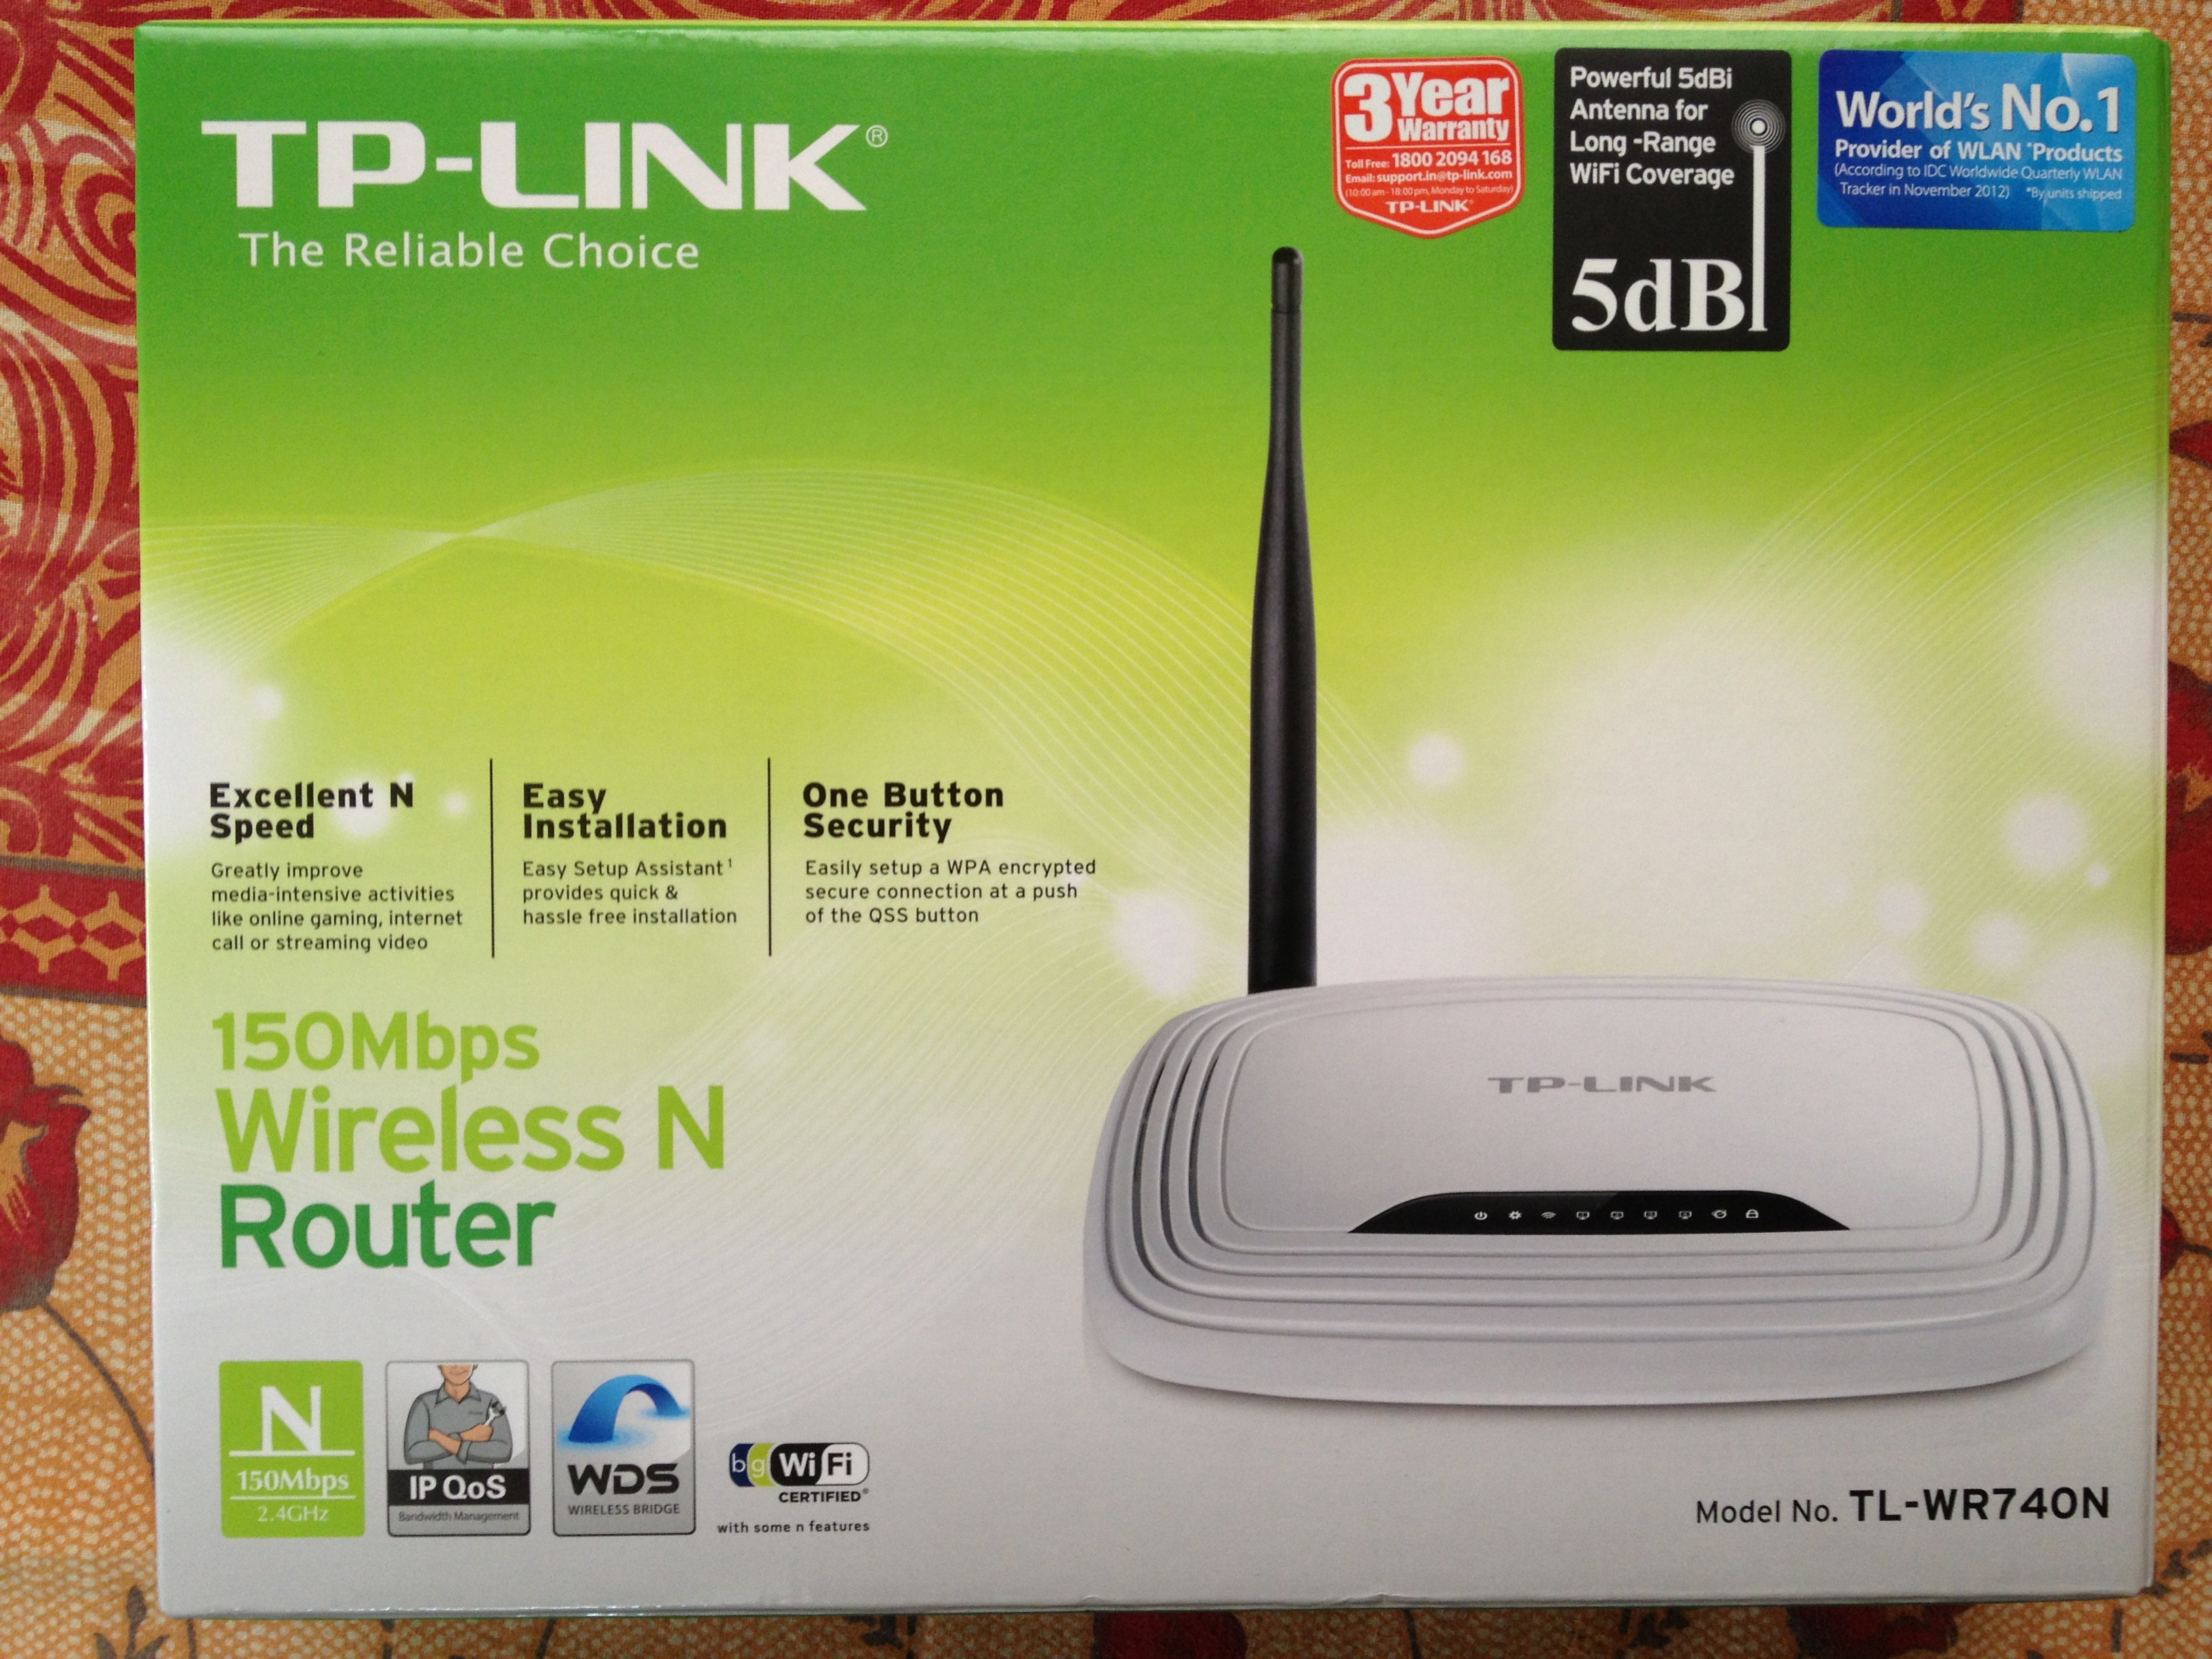 TP-LINK TL-WR740N box front view